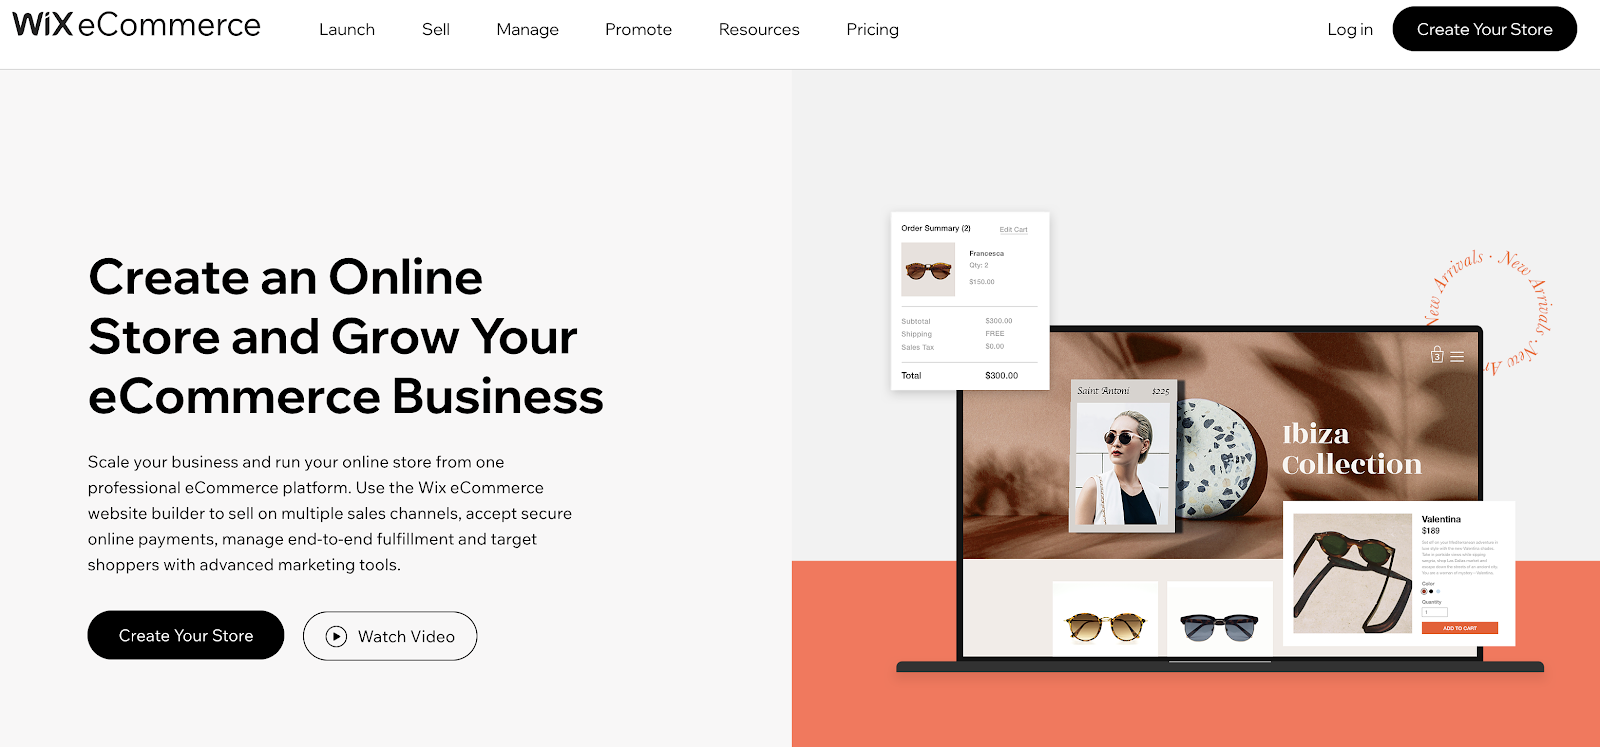 Wix eCommerce Website Builder (Screenshot of Homepage and Features)